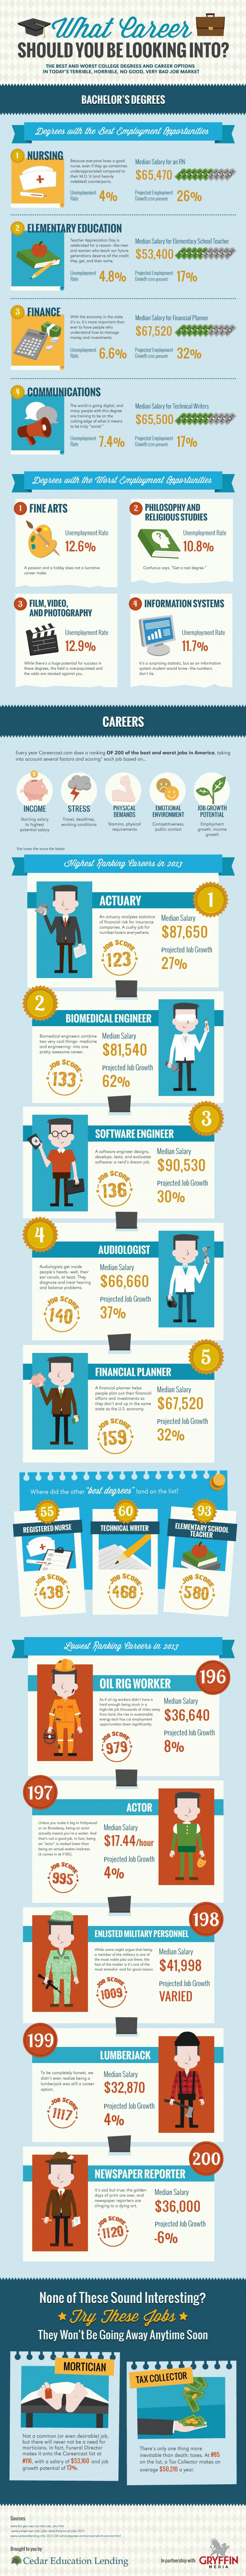 What Career Should you be Looking Into? Infographic